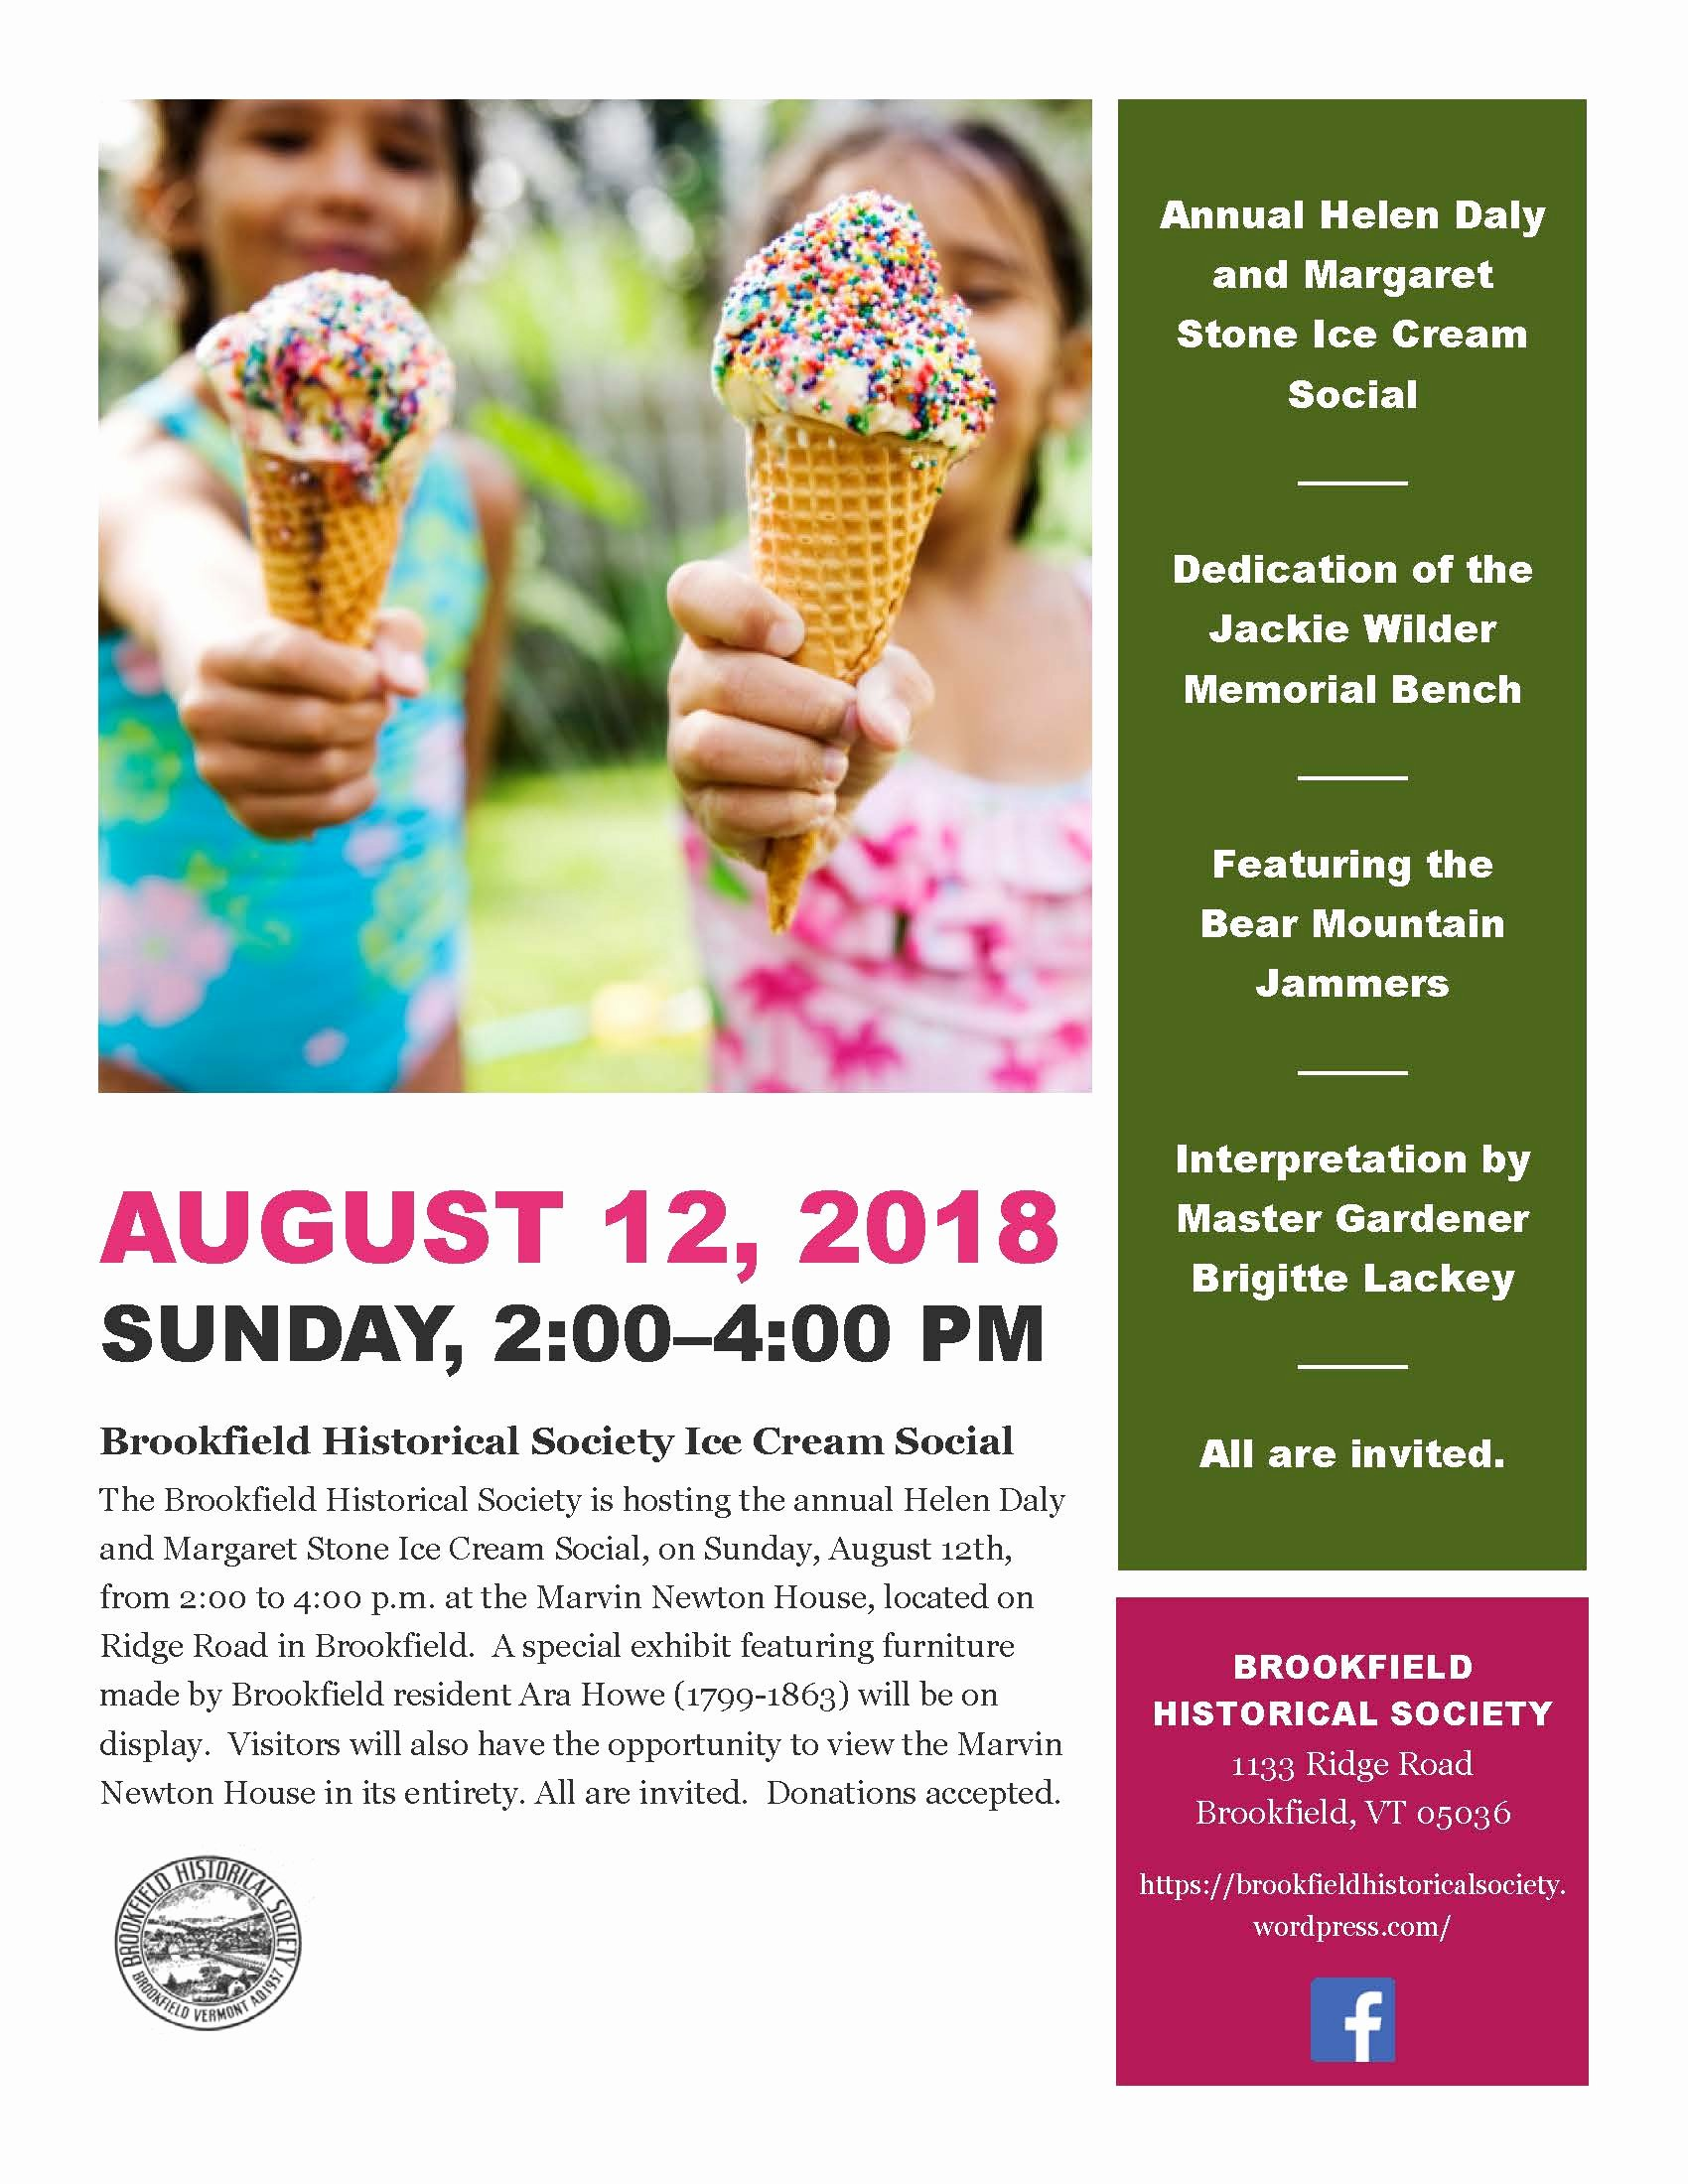 Ice Cream social Flyer Lovely Brookfield Historical society Vt